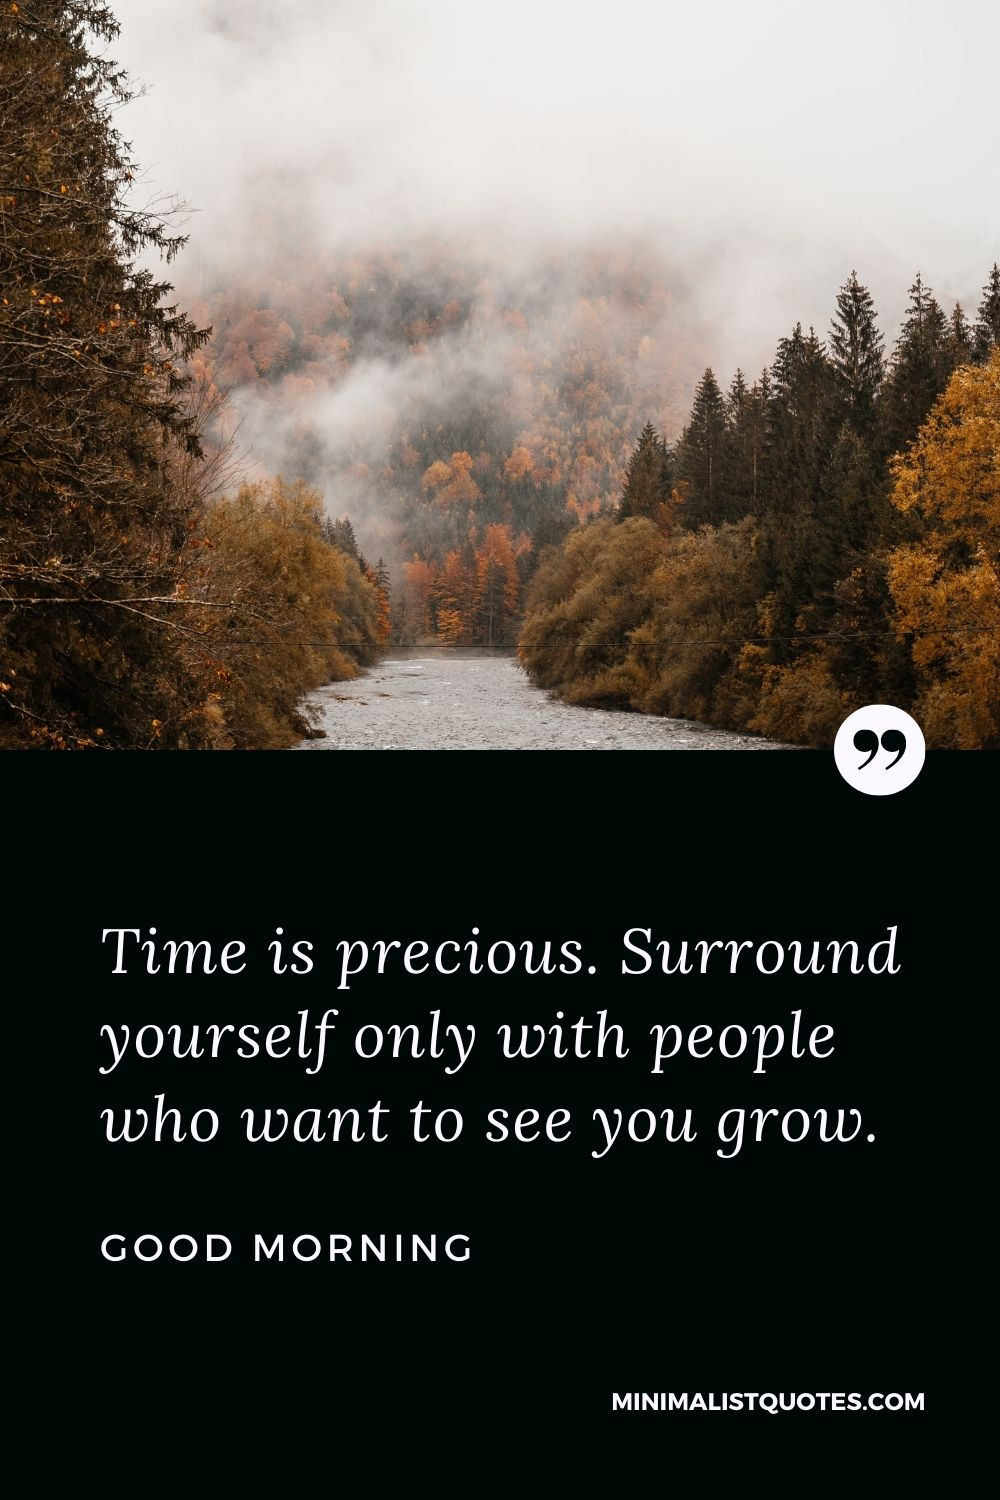 Good Morning Wish & Message With Image: Time is precious. Surround yourself only with people who want to see you grow.